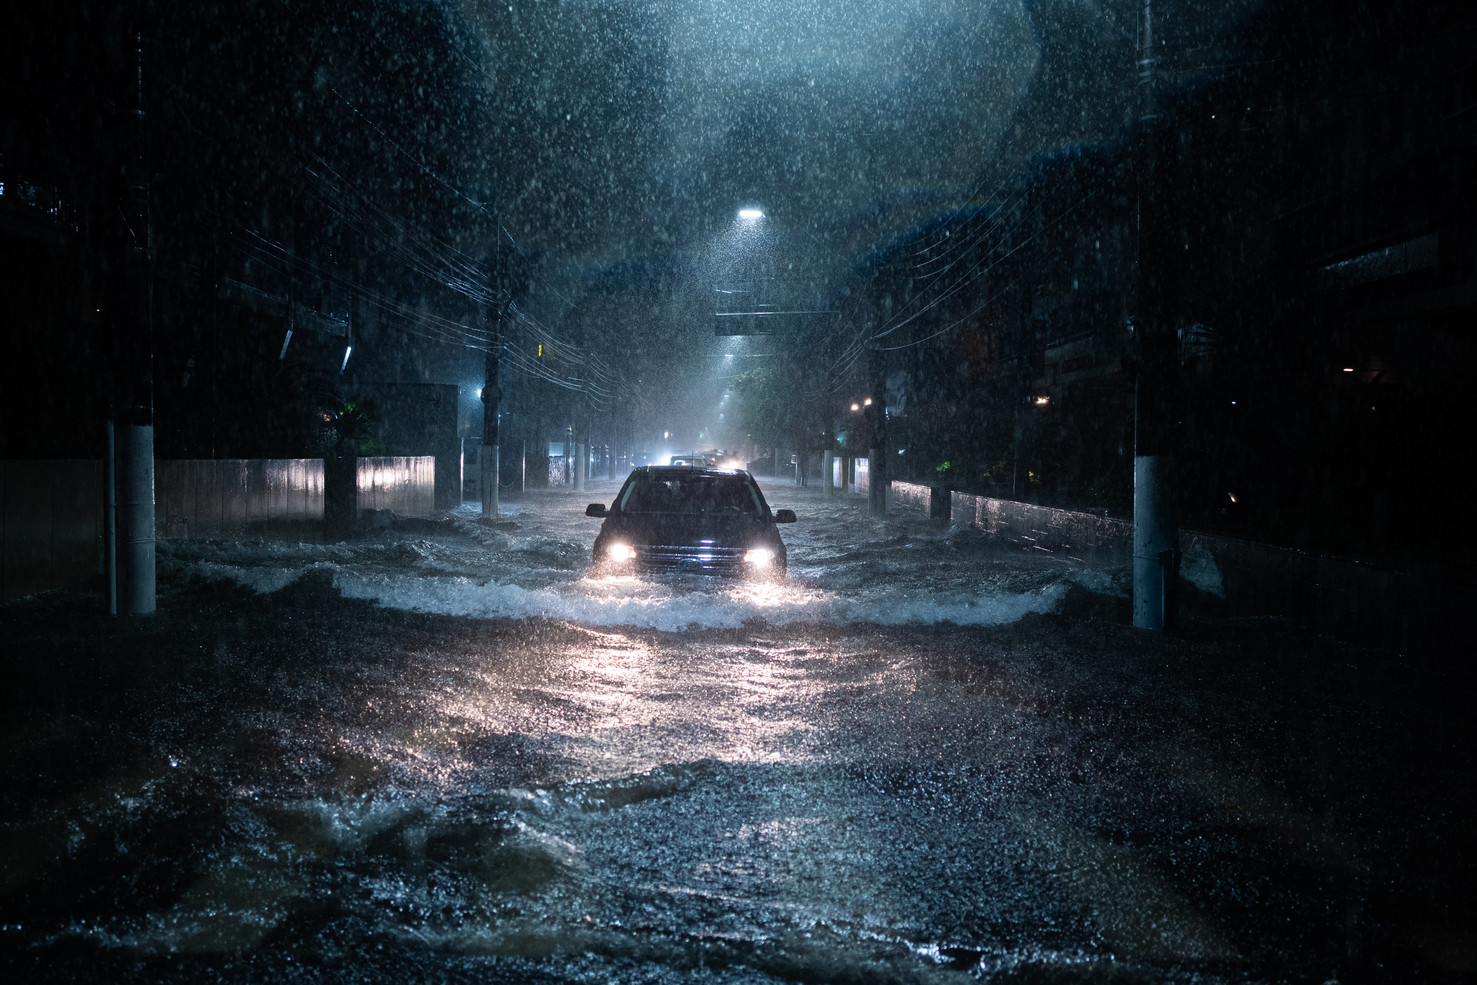 A car crossing a flood point in Santos, Sao Paulo, Brazil, during the heavy rainy night on March 2, 2020.